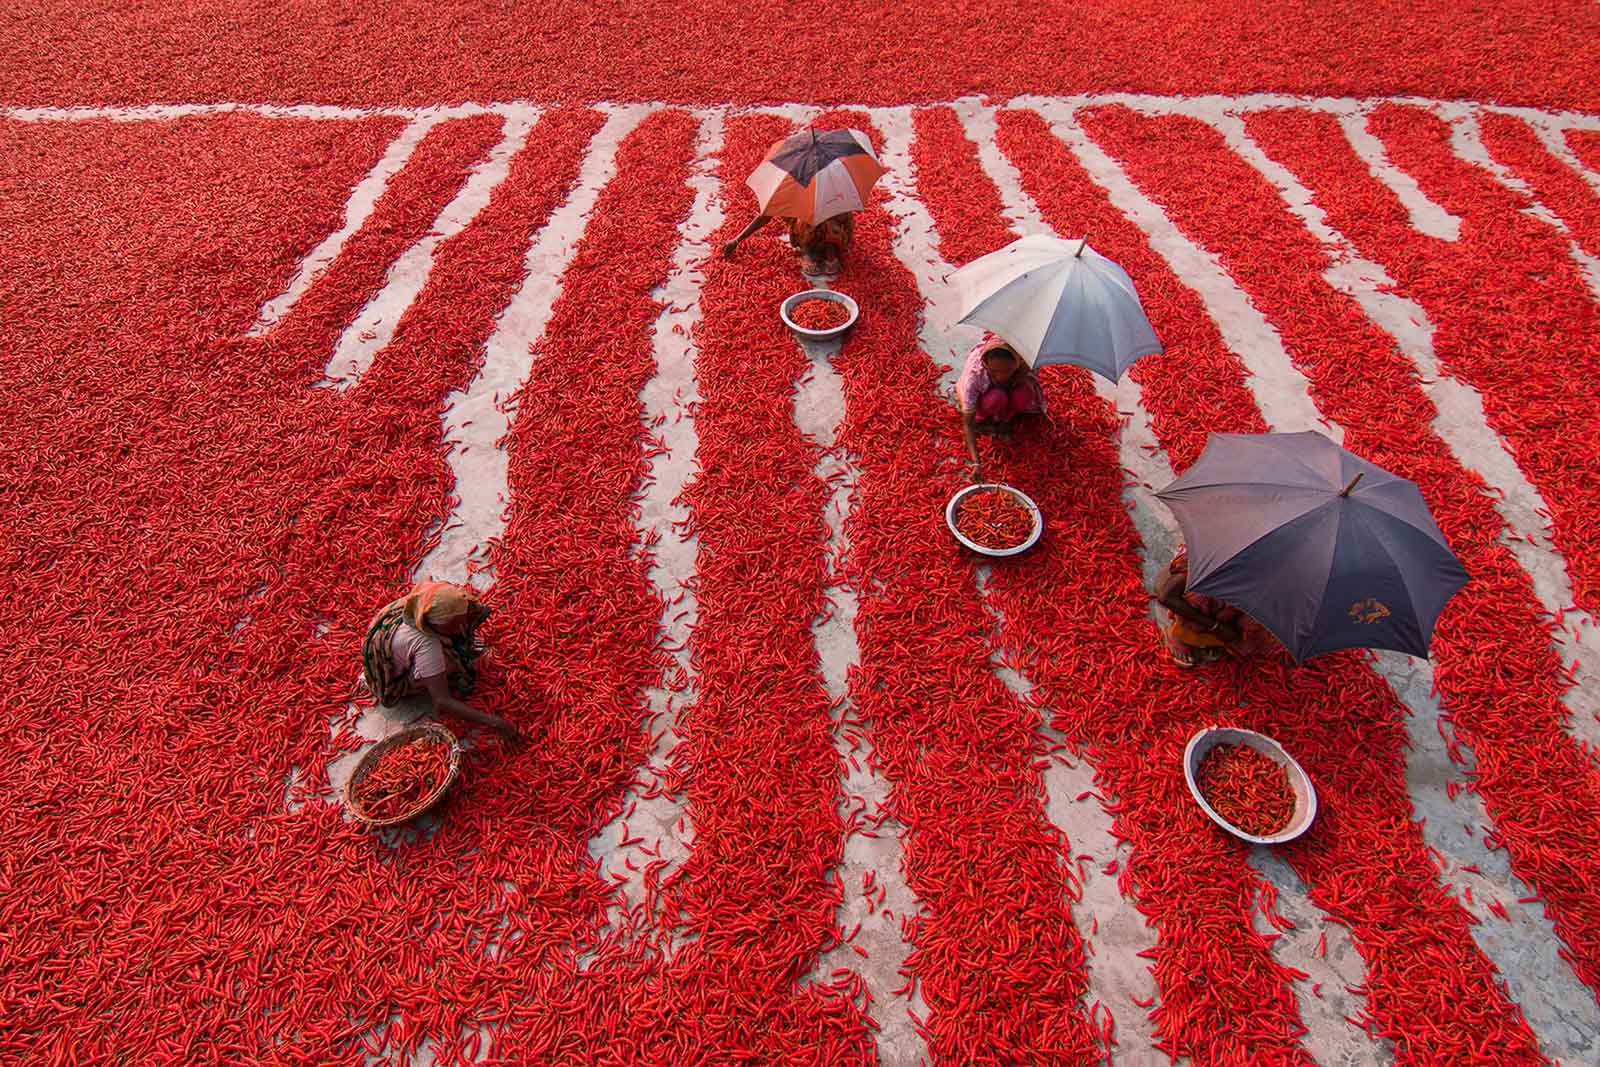 Red Chilies Pickers by Azim Khan Ronnie